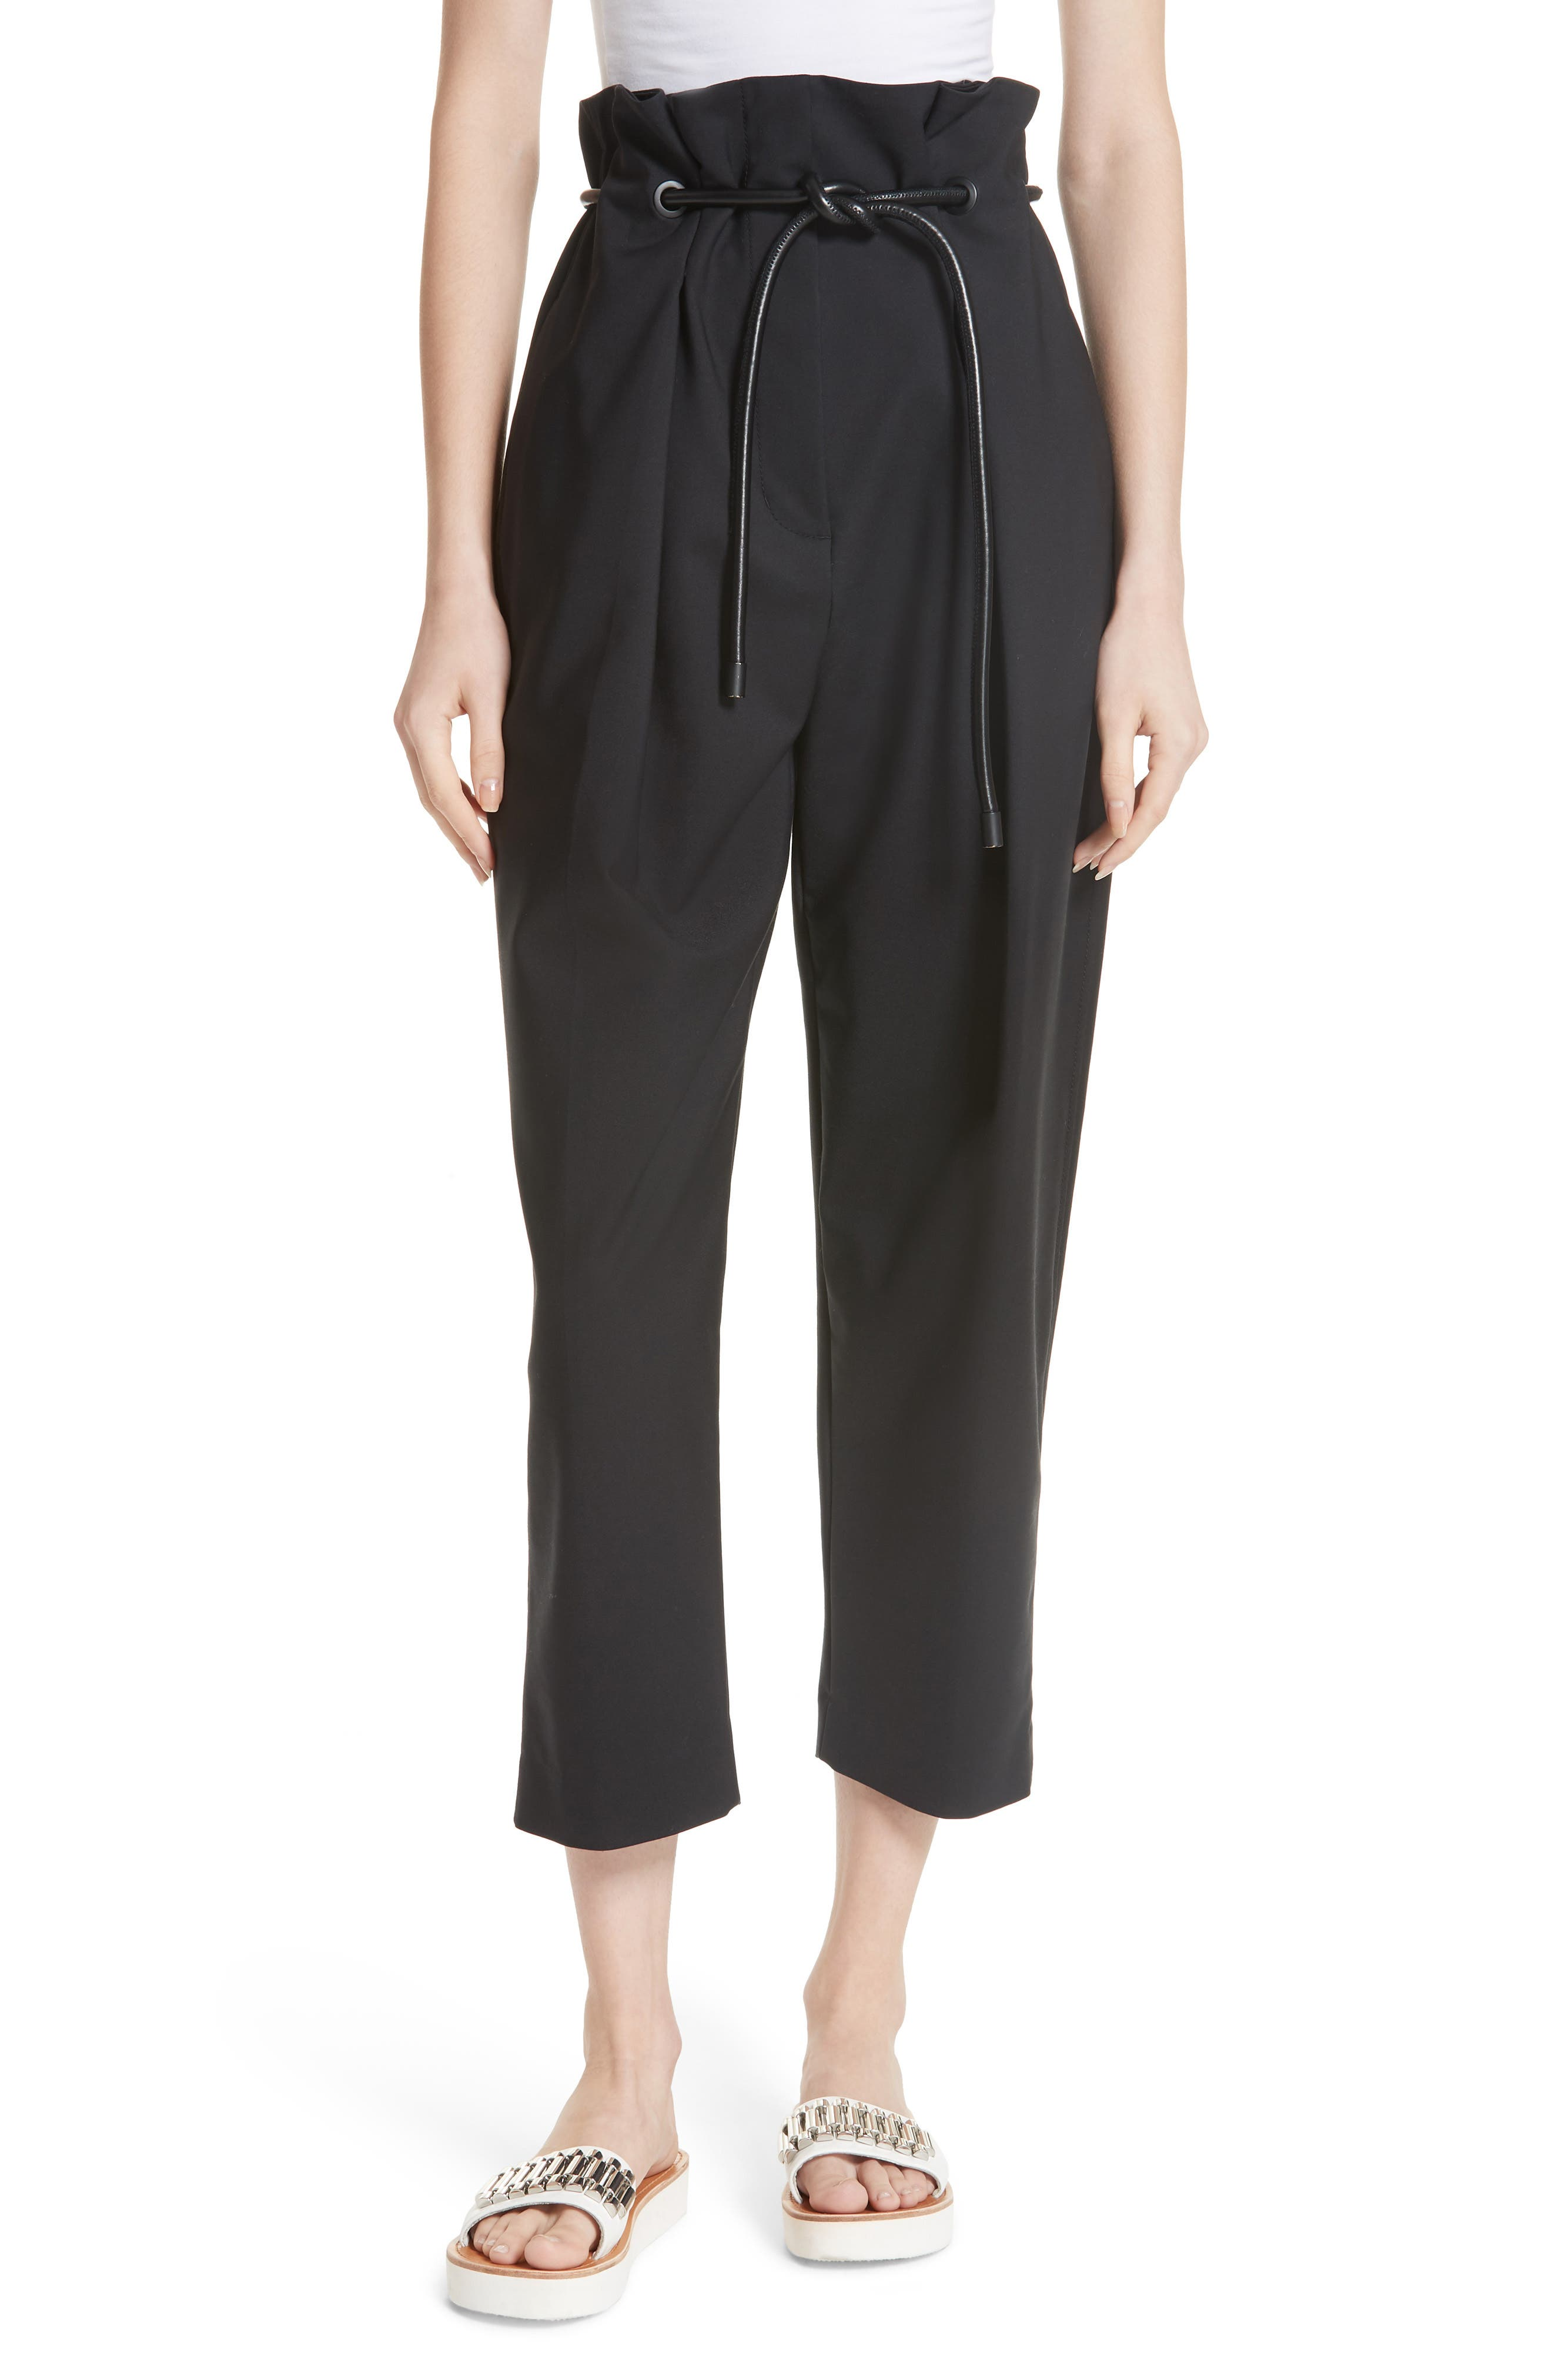 3.1 PHILLIP LIM Origami Crop Flare Pants, Main, color, 001